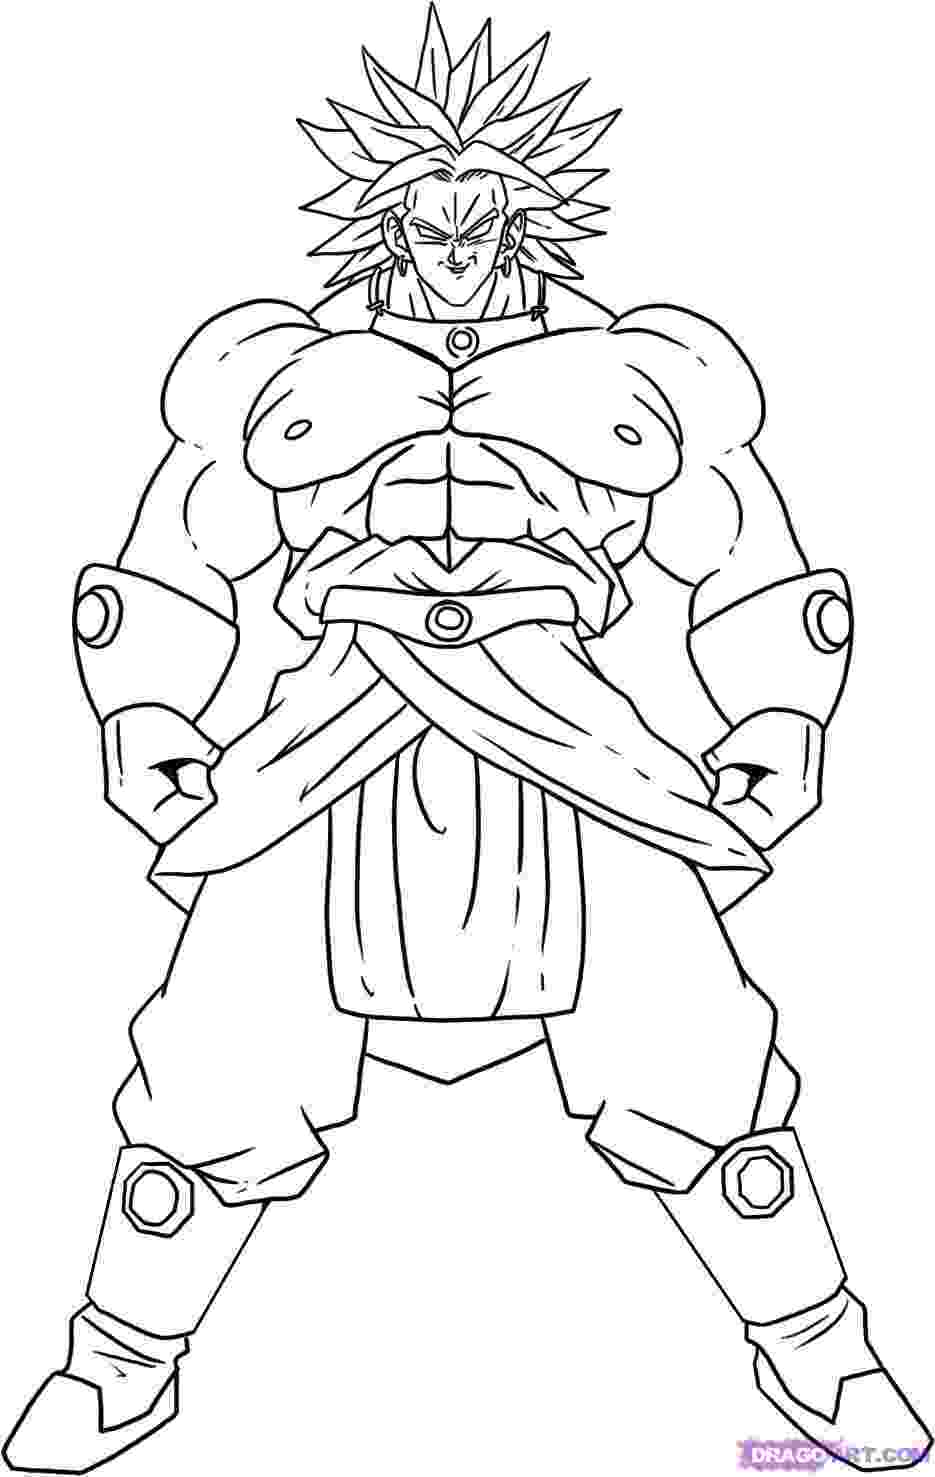 dragon ball z free coloring pages free printable dragon ball z coloring pages for kids z free coloring pages dragon ball